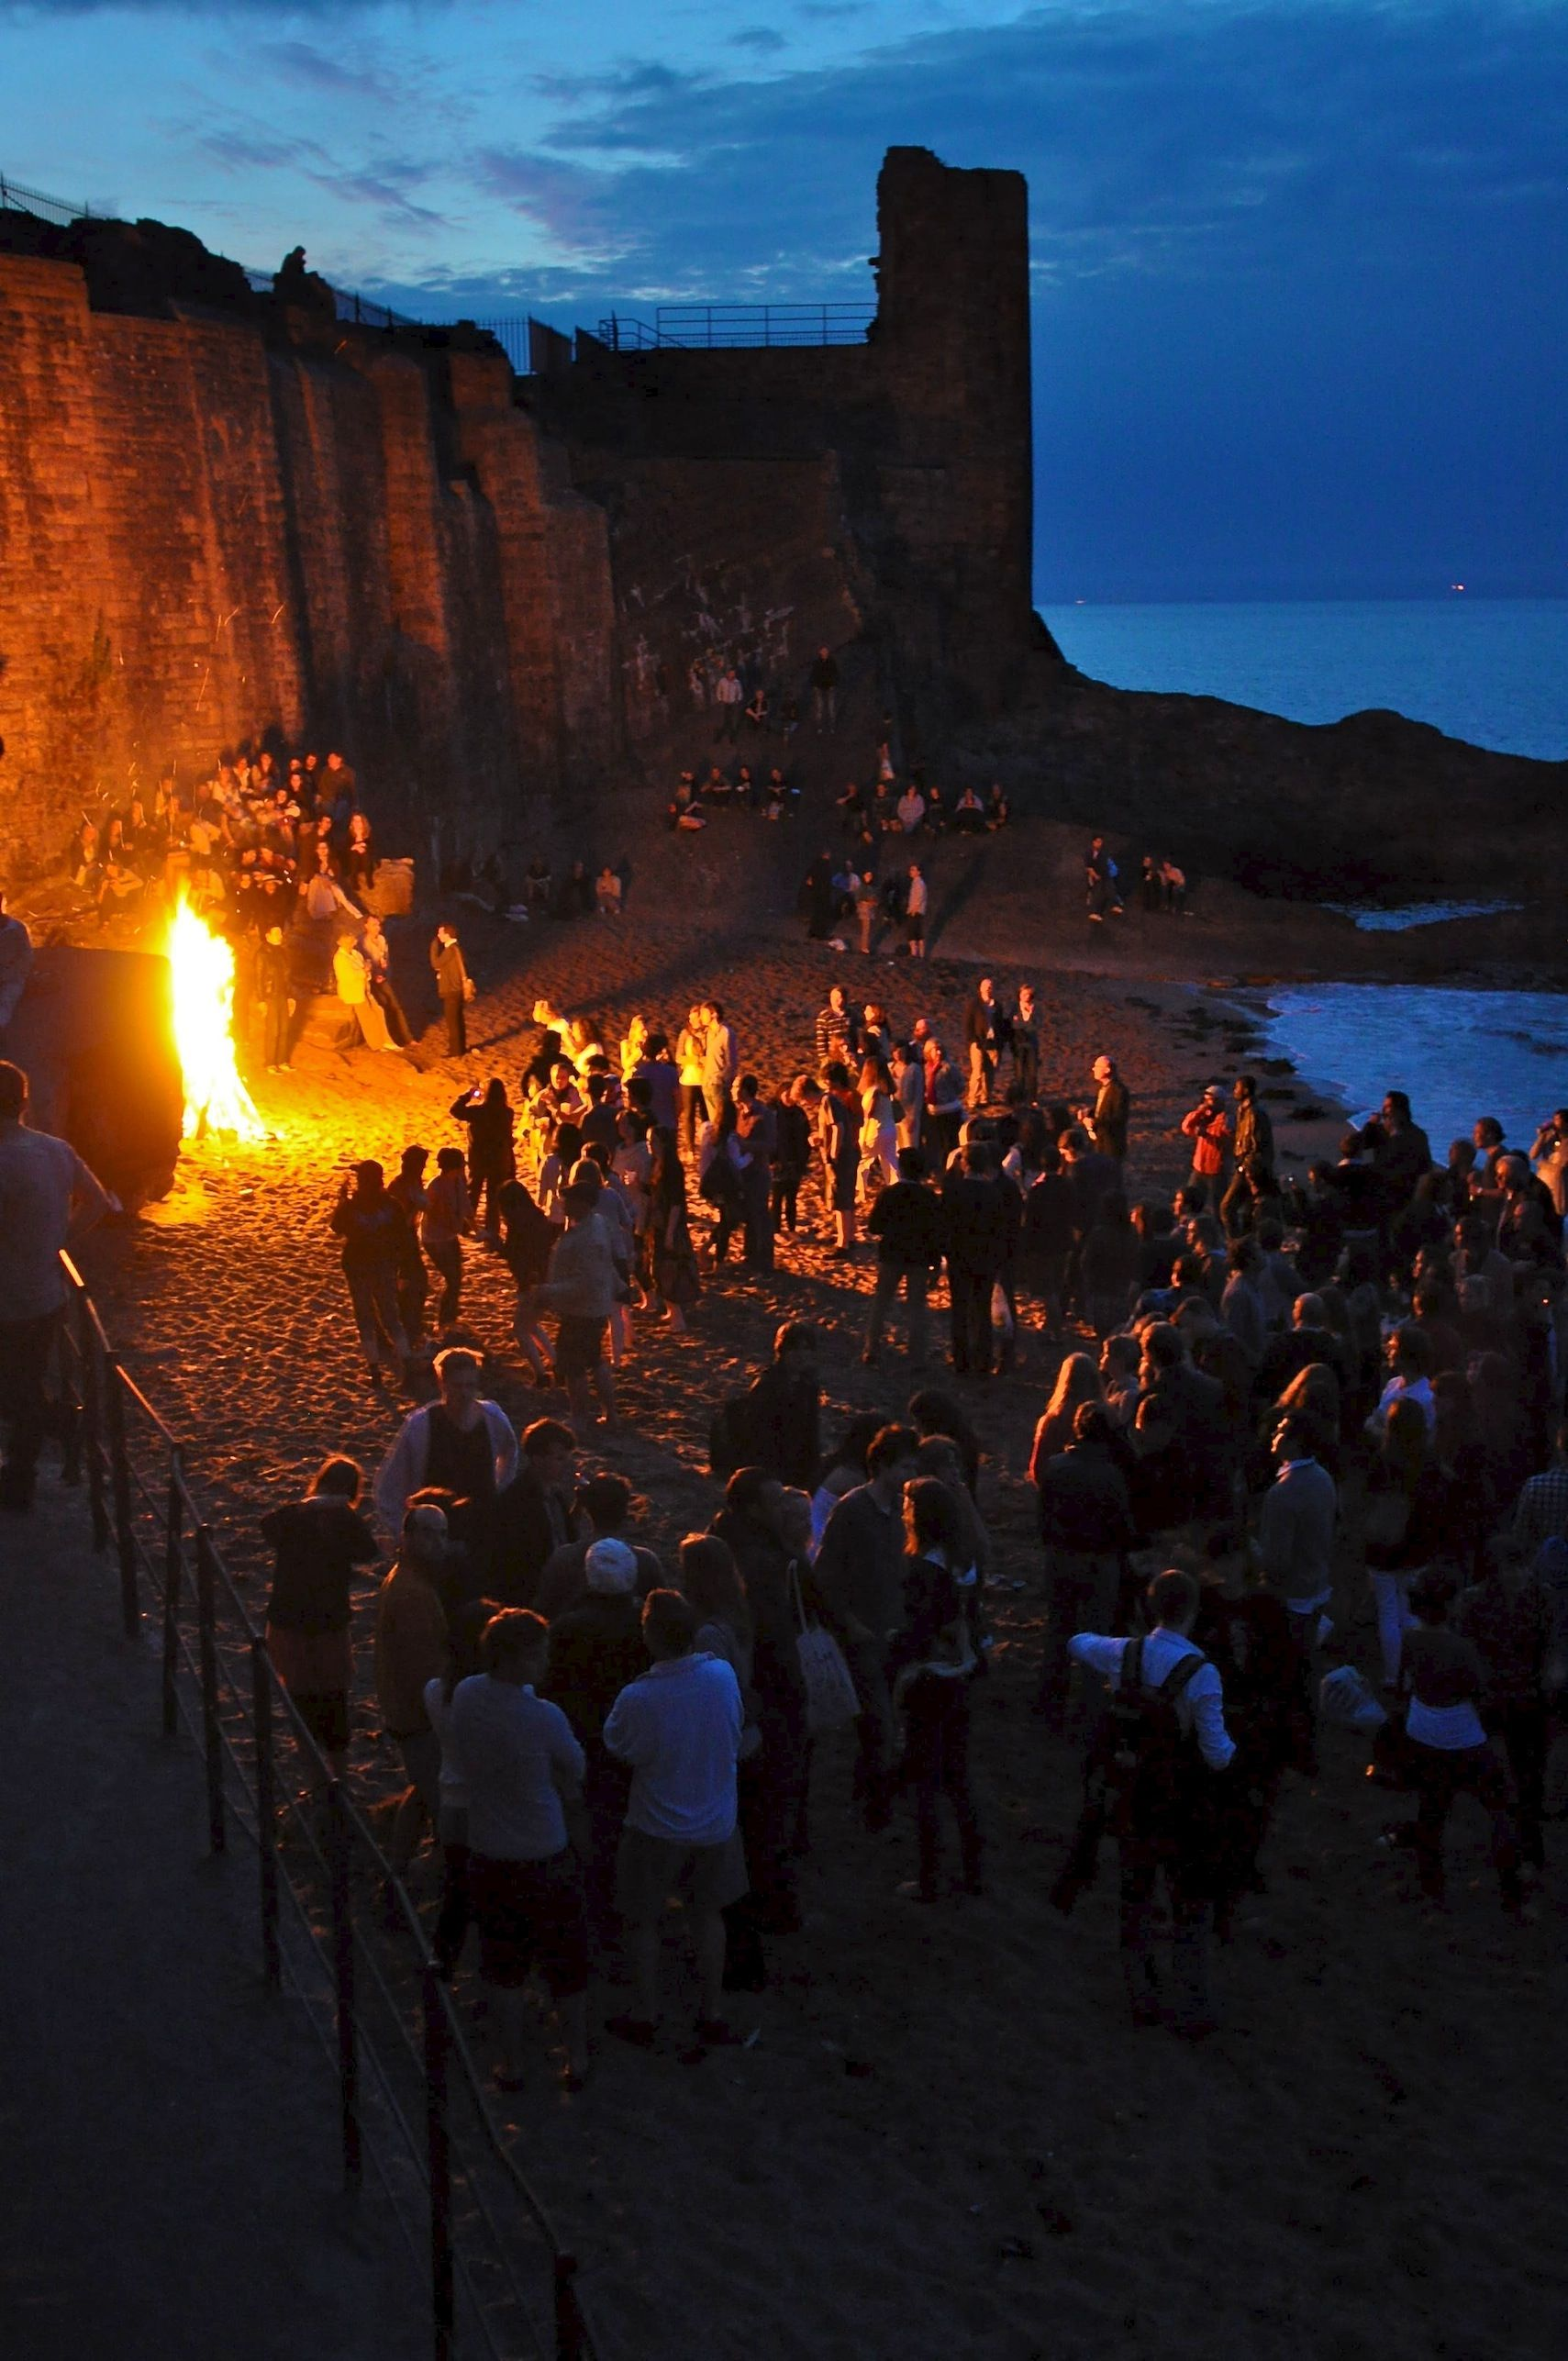 On May 1st, students traditionally run into the North Sea at dawn in an event known as 'May Dip.' Revelers usually gather on the town's beaches to have bonfires and hang out prior to sunrise.